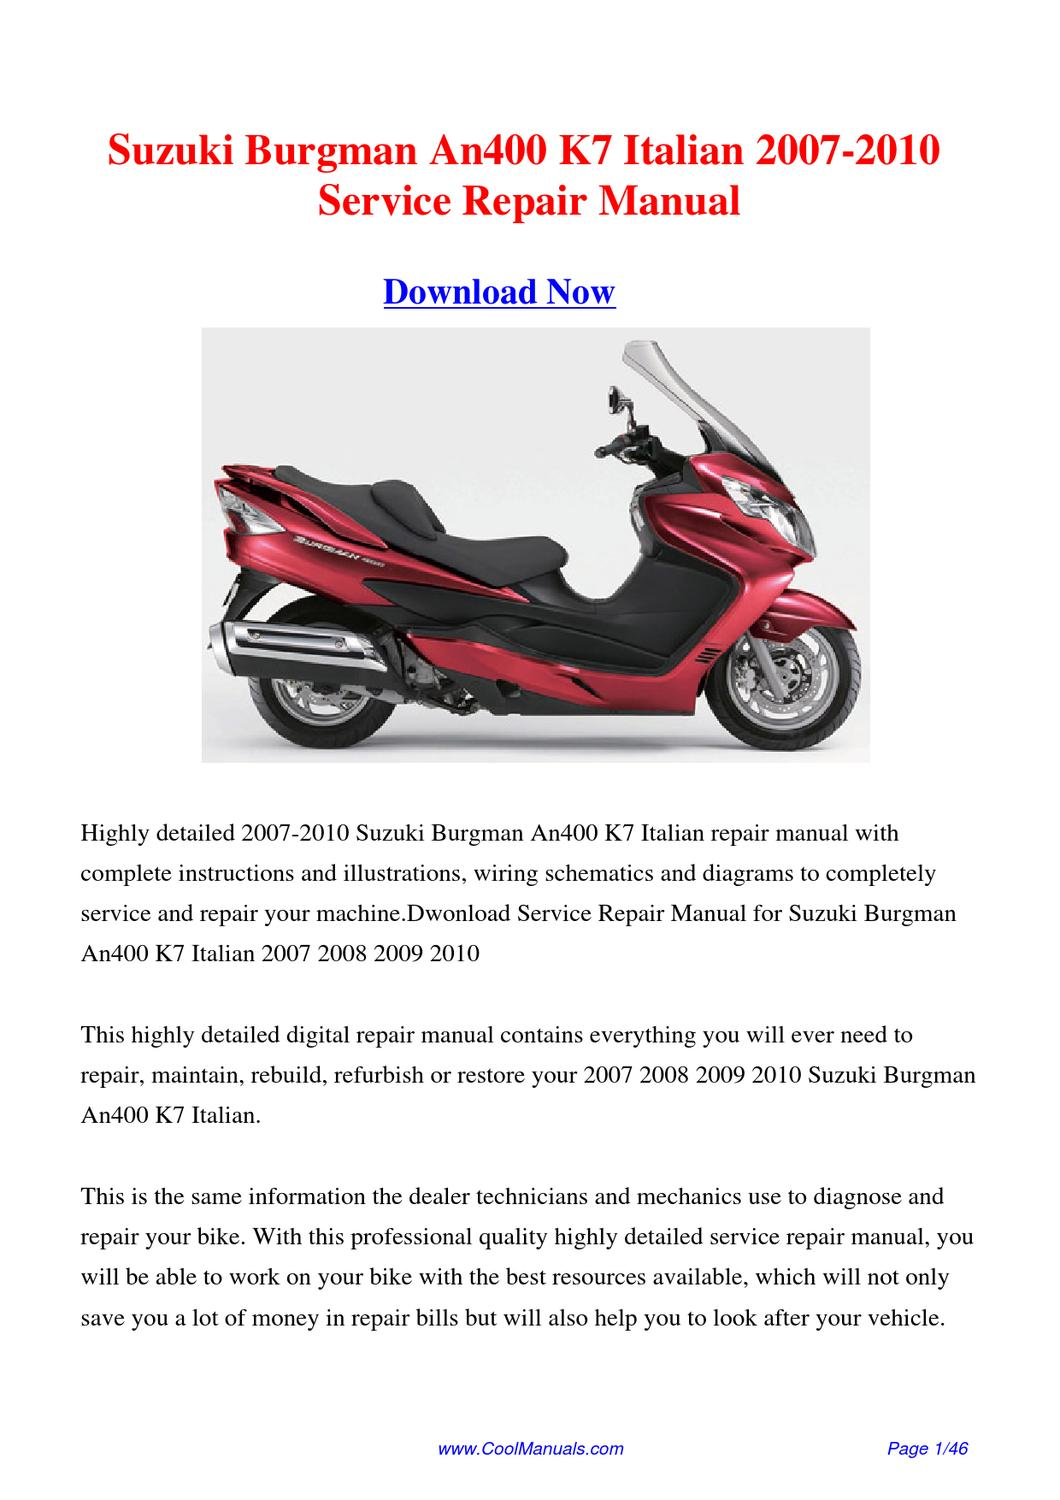 hight resolution of repair manual riders website and forum italian currently available at notaire bretagne immobilier standard maintenance oil changes way example simple